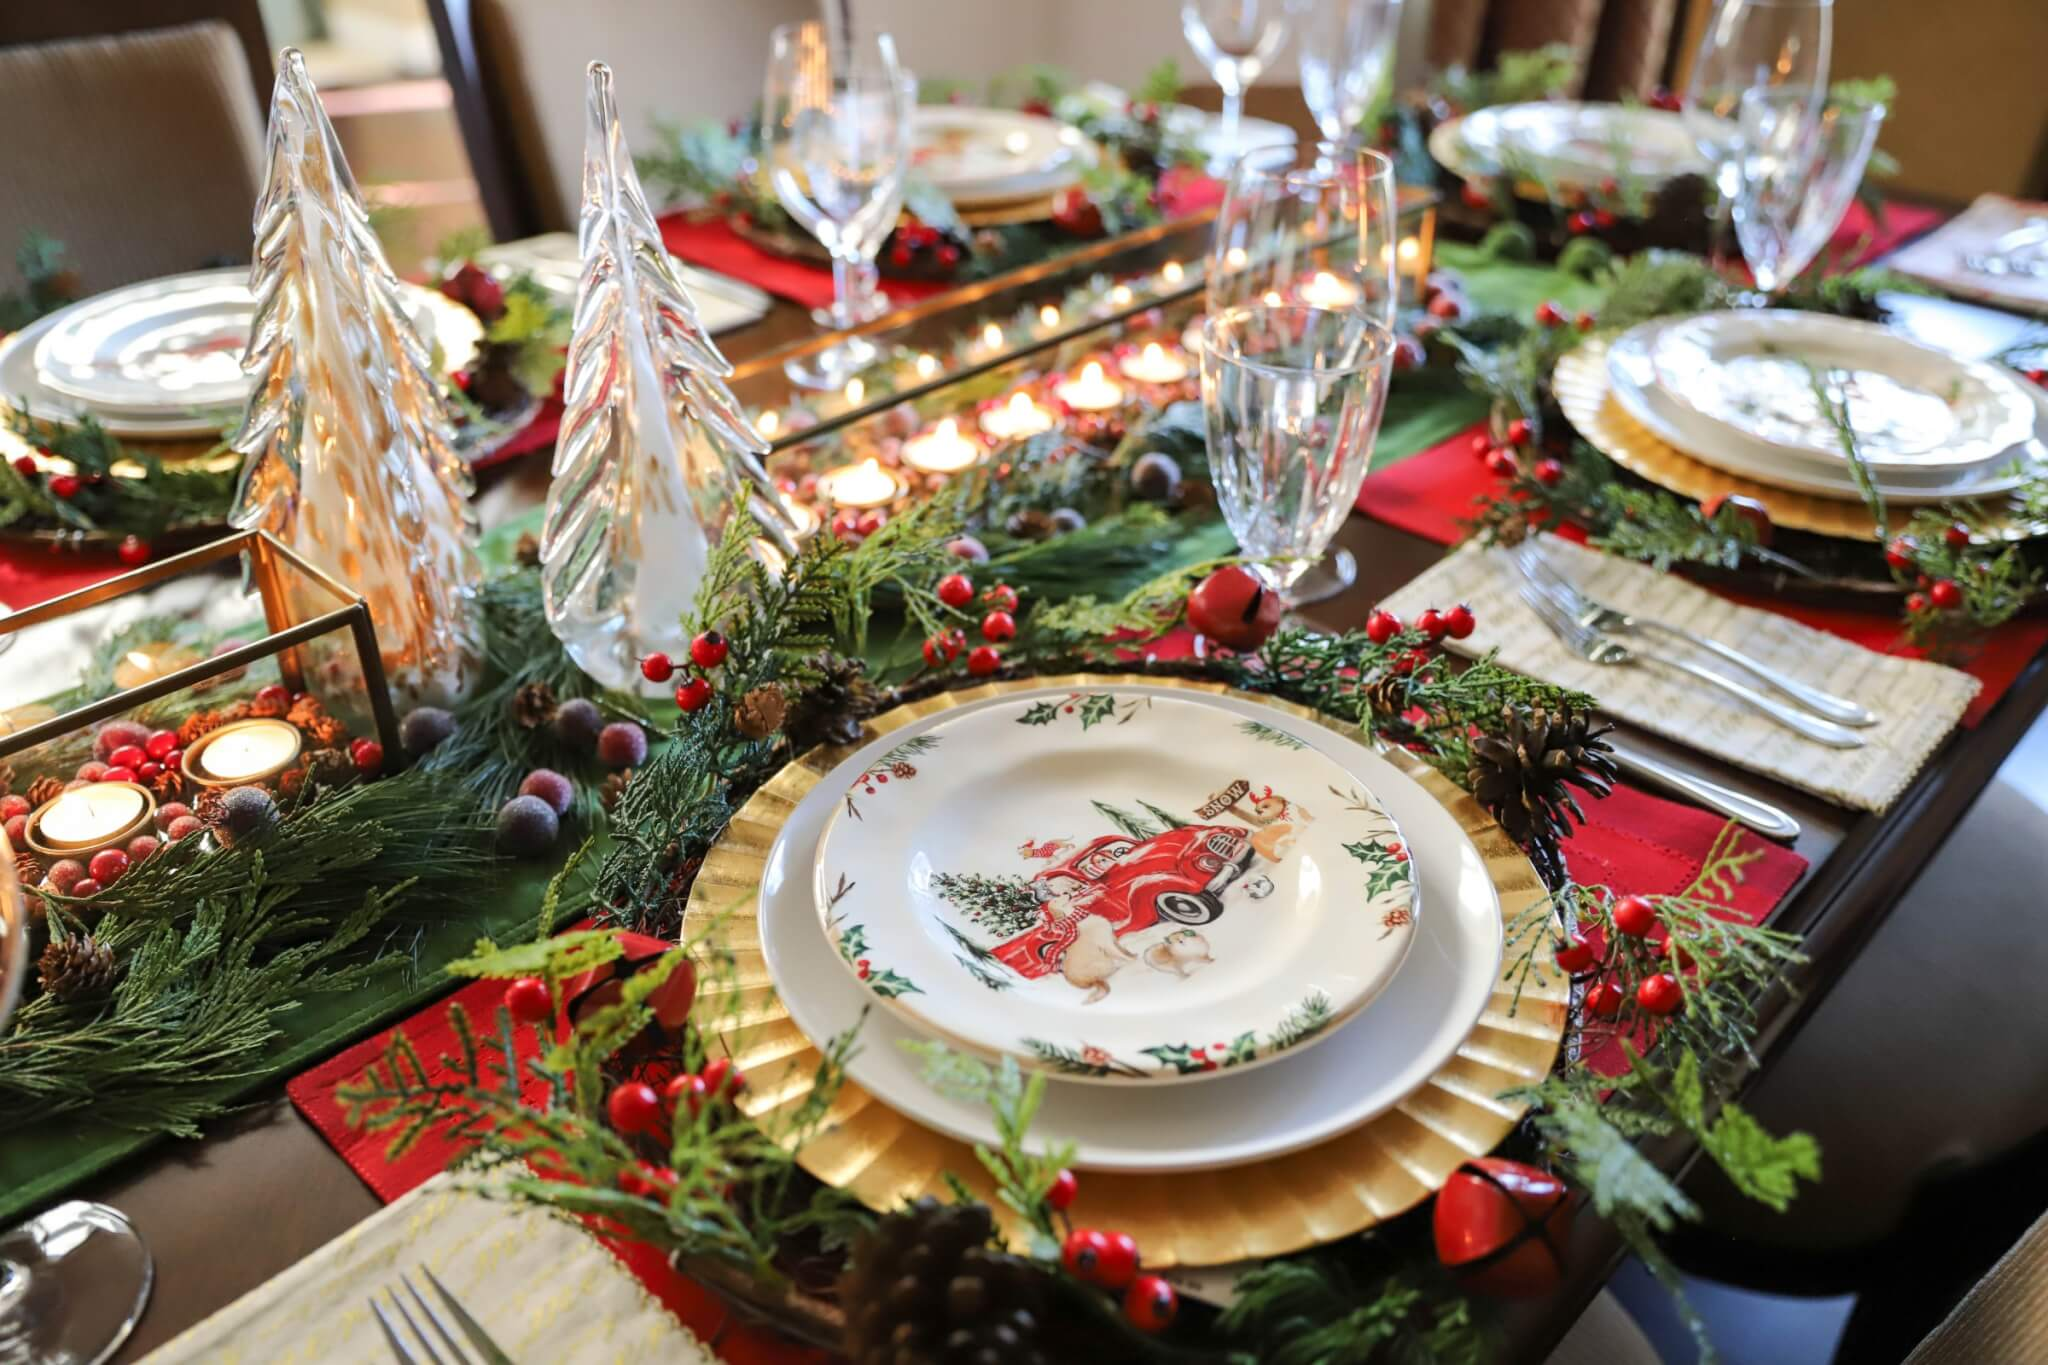 How to set the table, tablesetting ideas, ideas for holiday tablesettings, holiday tablesetting tips, tablesetting diagram, basic tablesetting, how to set the table for the holidays, tablescape, tablescape for the holidays, tablsetting for Christmas, how to decorate the table for Christmas, Christmas table decorations, proper tablesetting, Christmas table decorating ideas, Christmas table centerpiece, christmas tablescape ideas